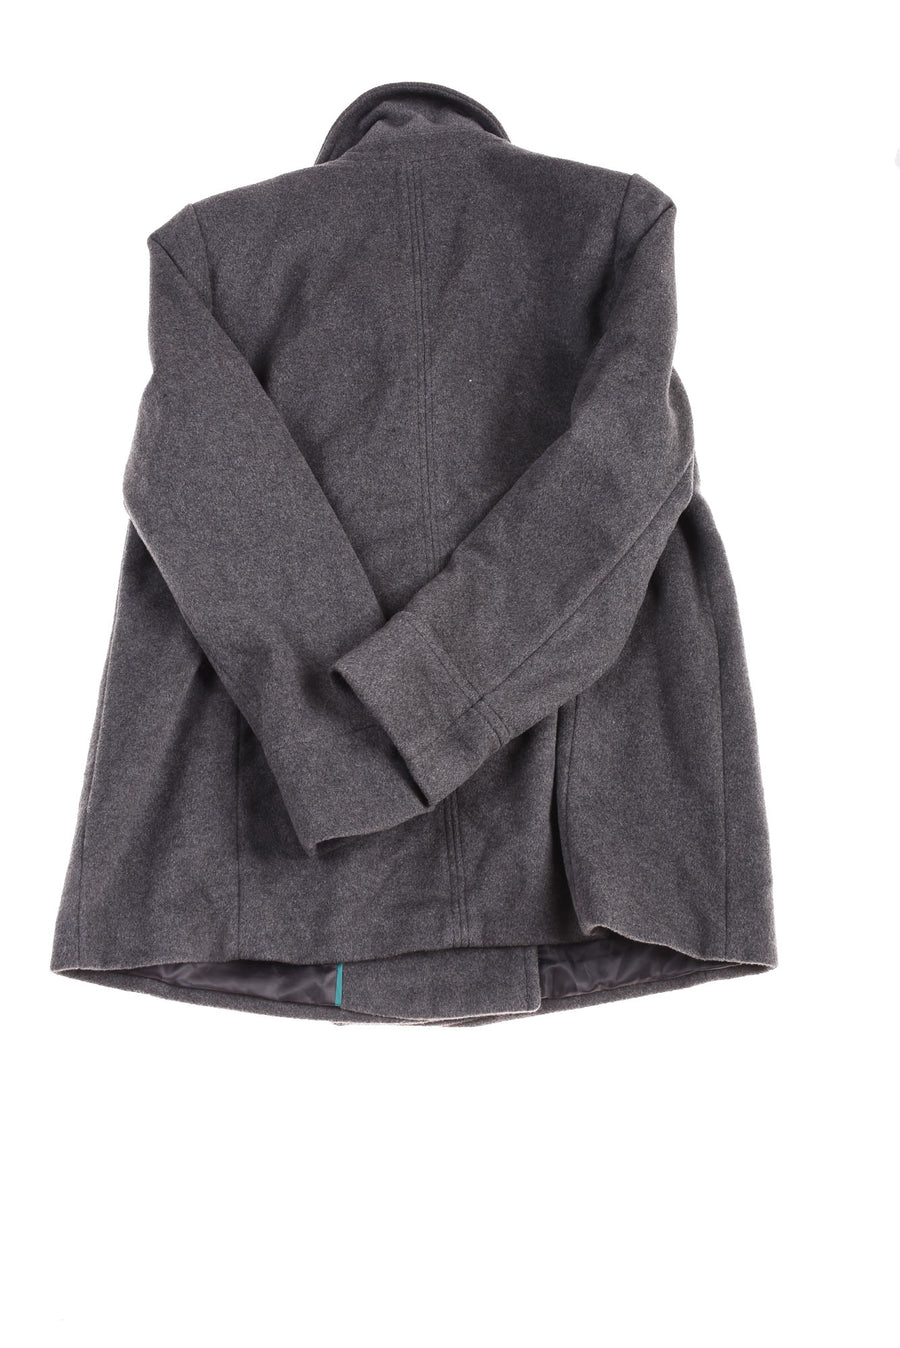 NEW St. John's Bay Women's Coat X-Large Gray